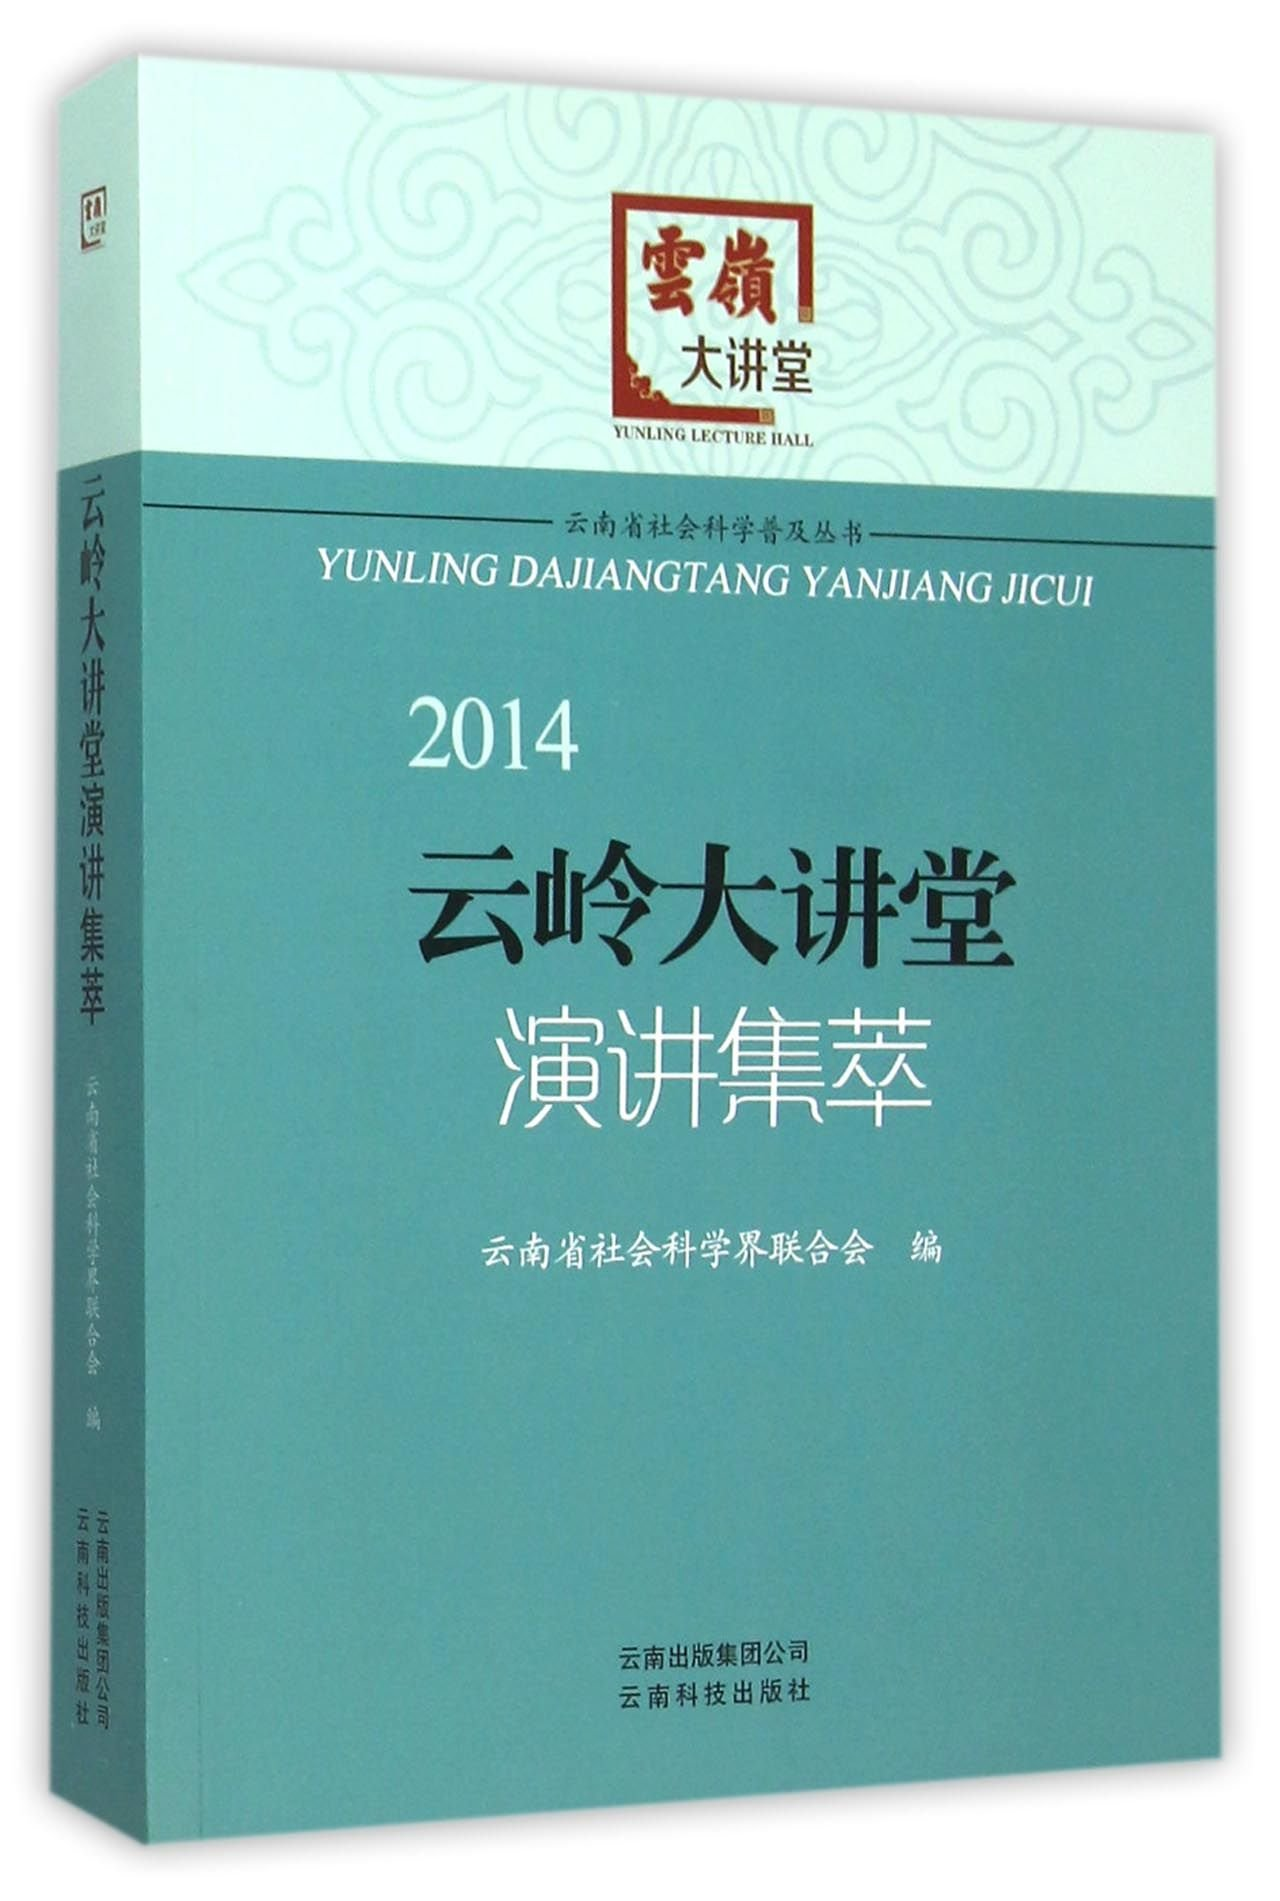 Collection of Speeches at Yunling Lecture Room 2014 (Chinese Edition) pdf